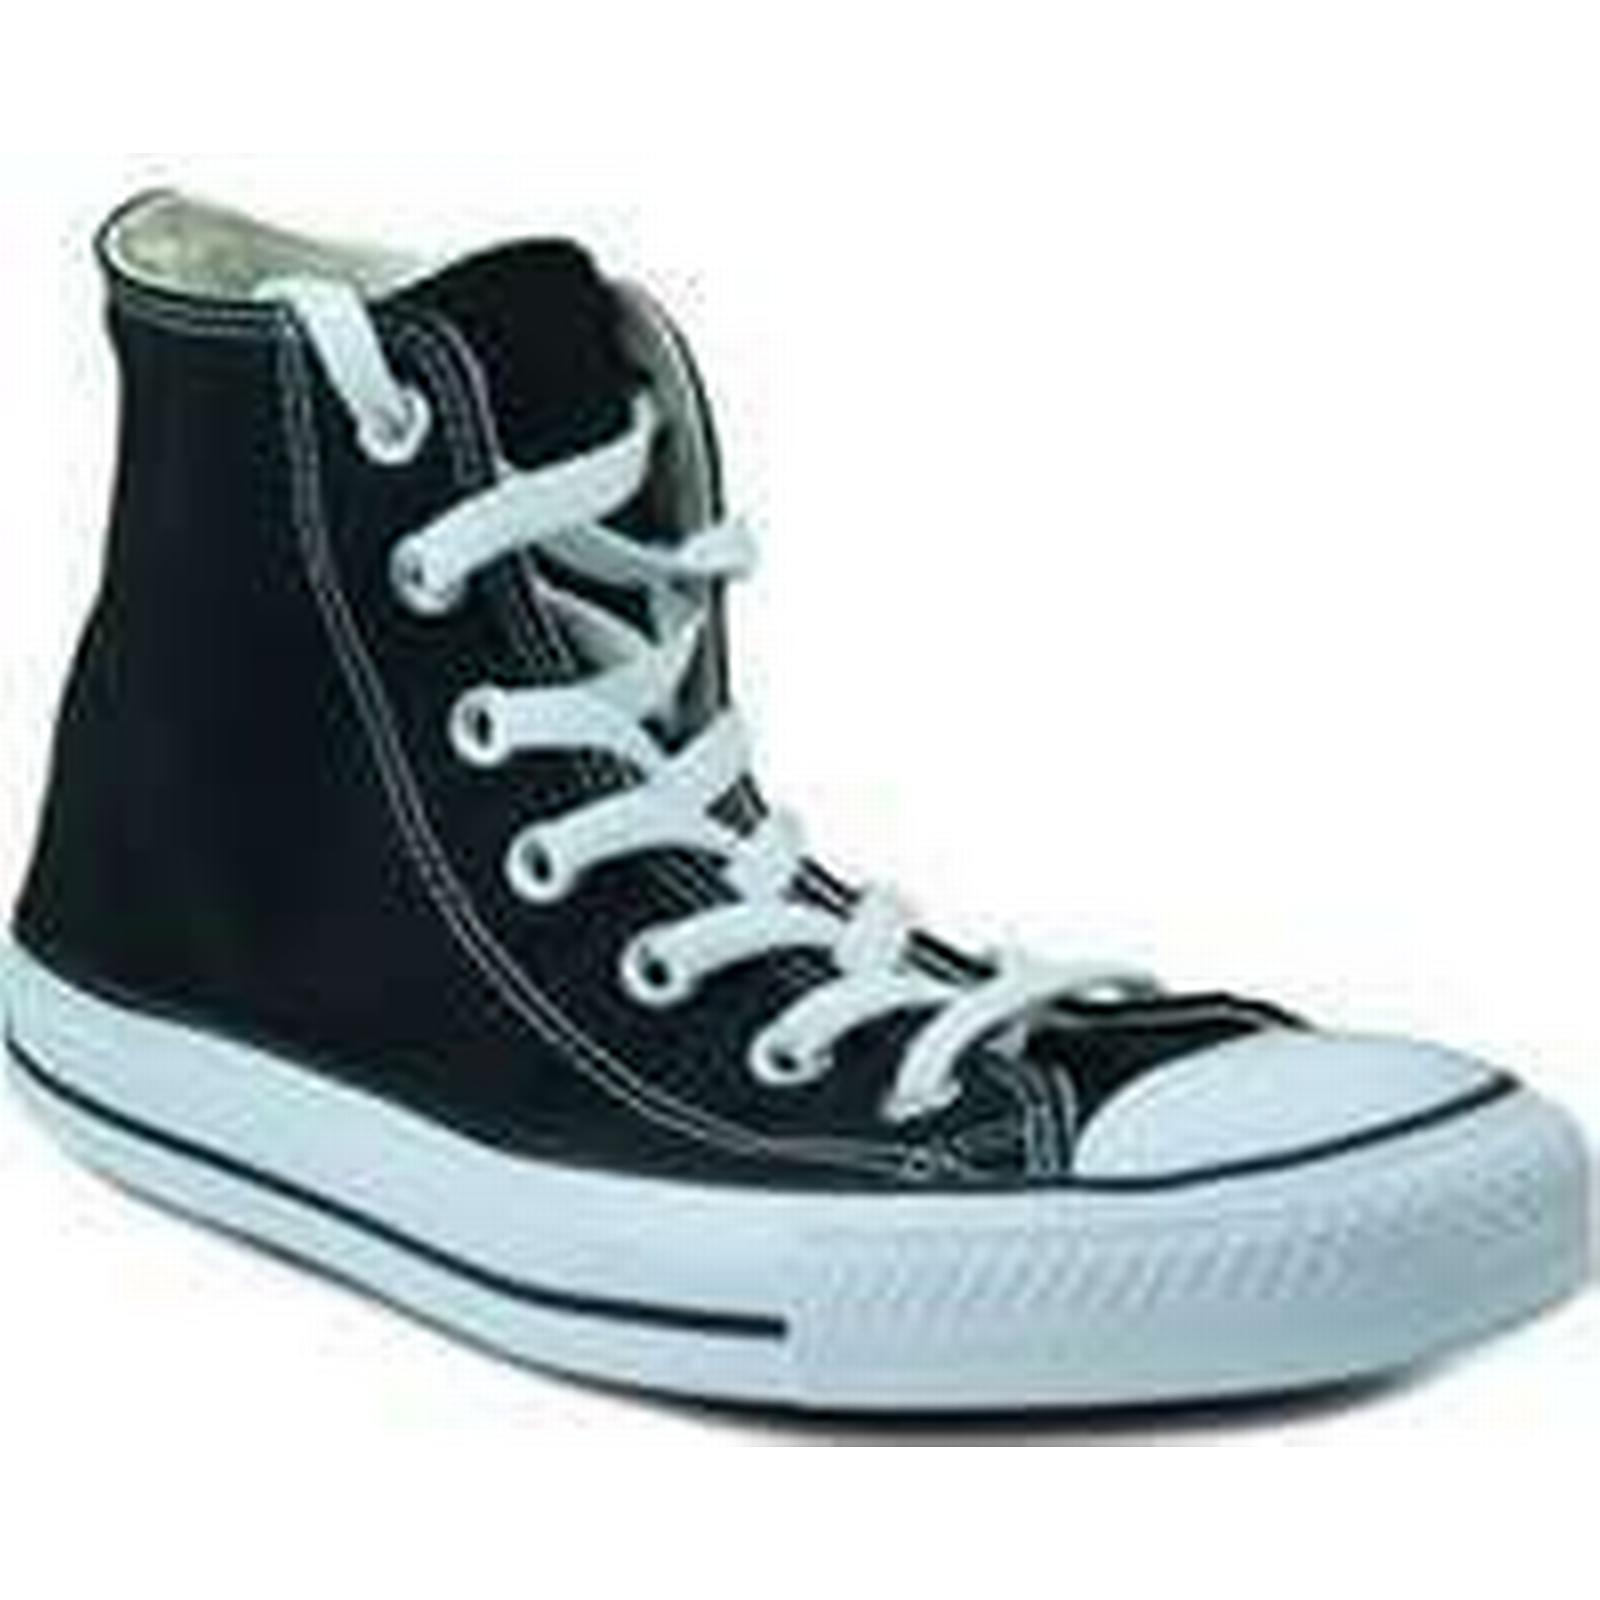 Spartoo.co.uk Converse canvas shoes high women's Black Shoes (High-top Trainers) in Black women's 184cbb